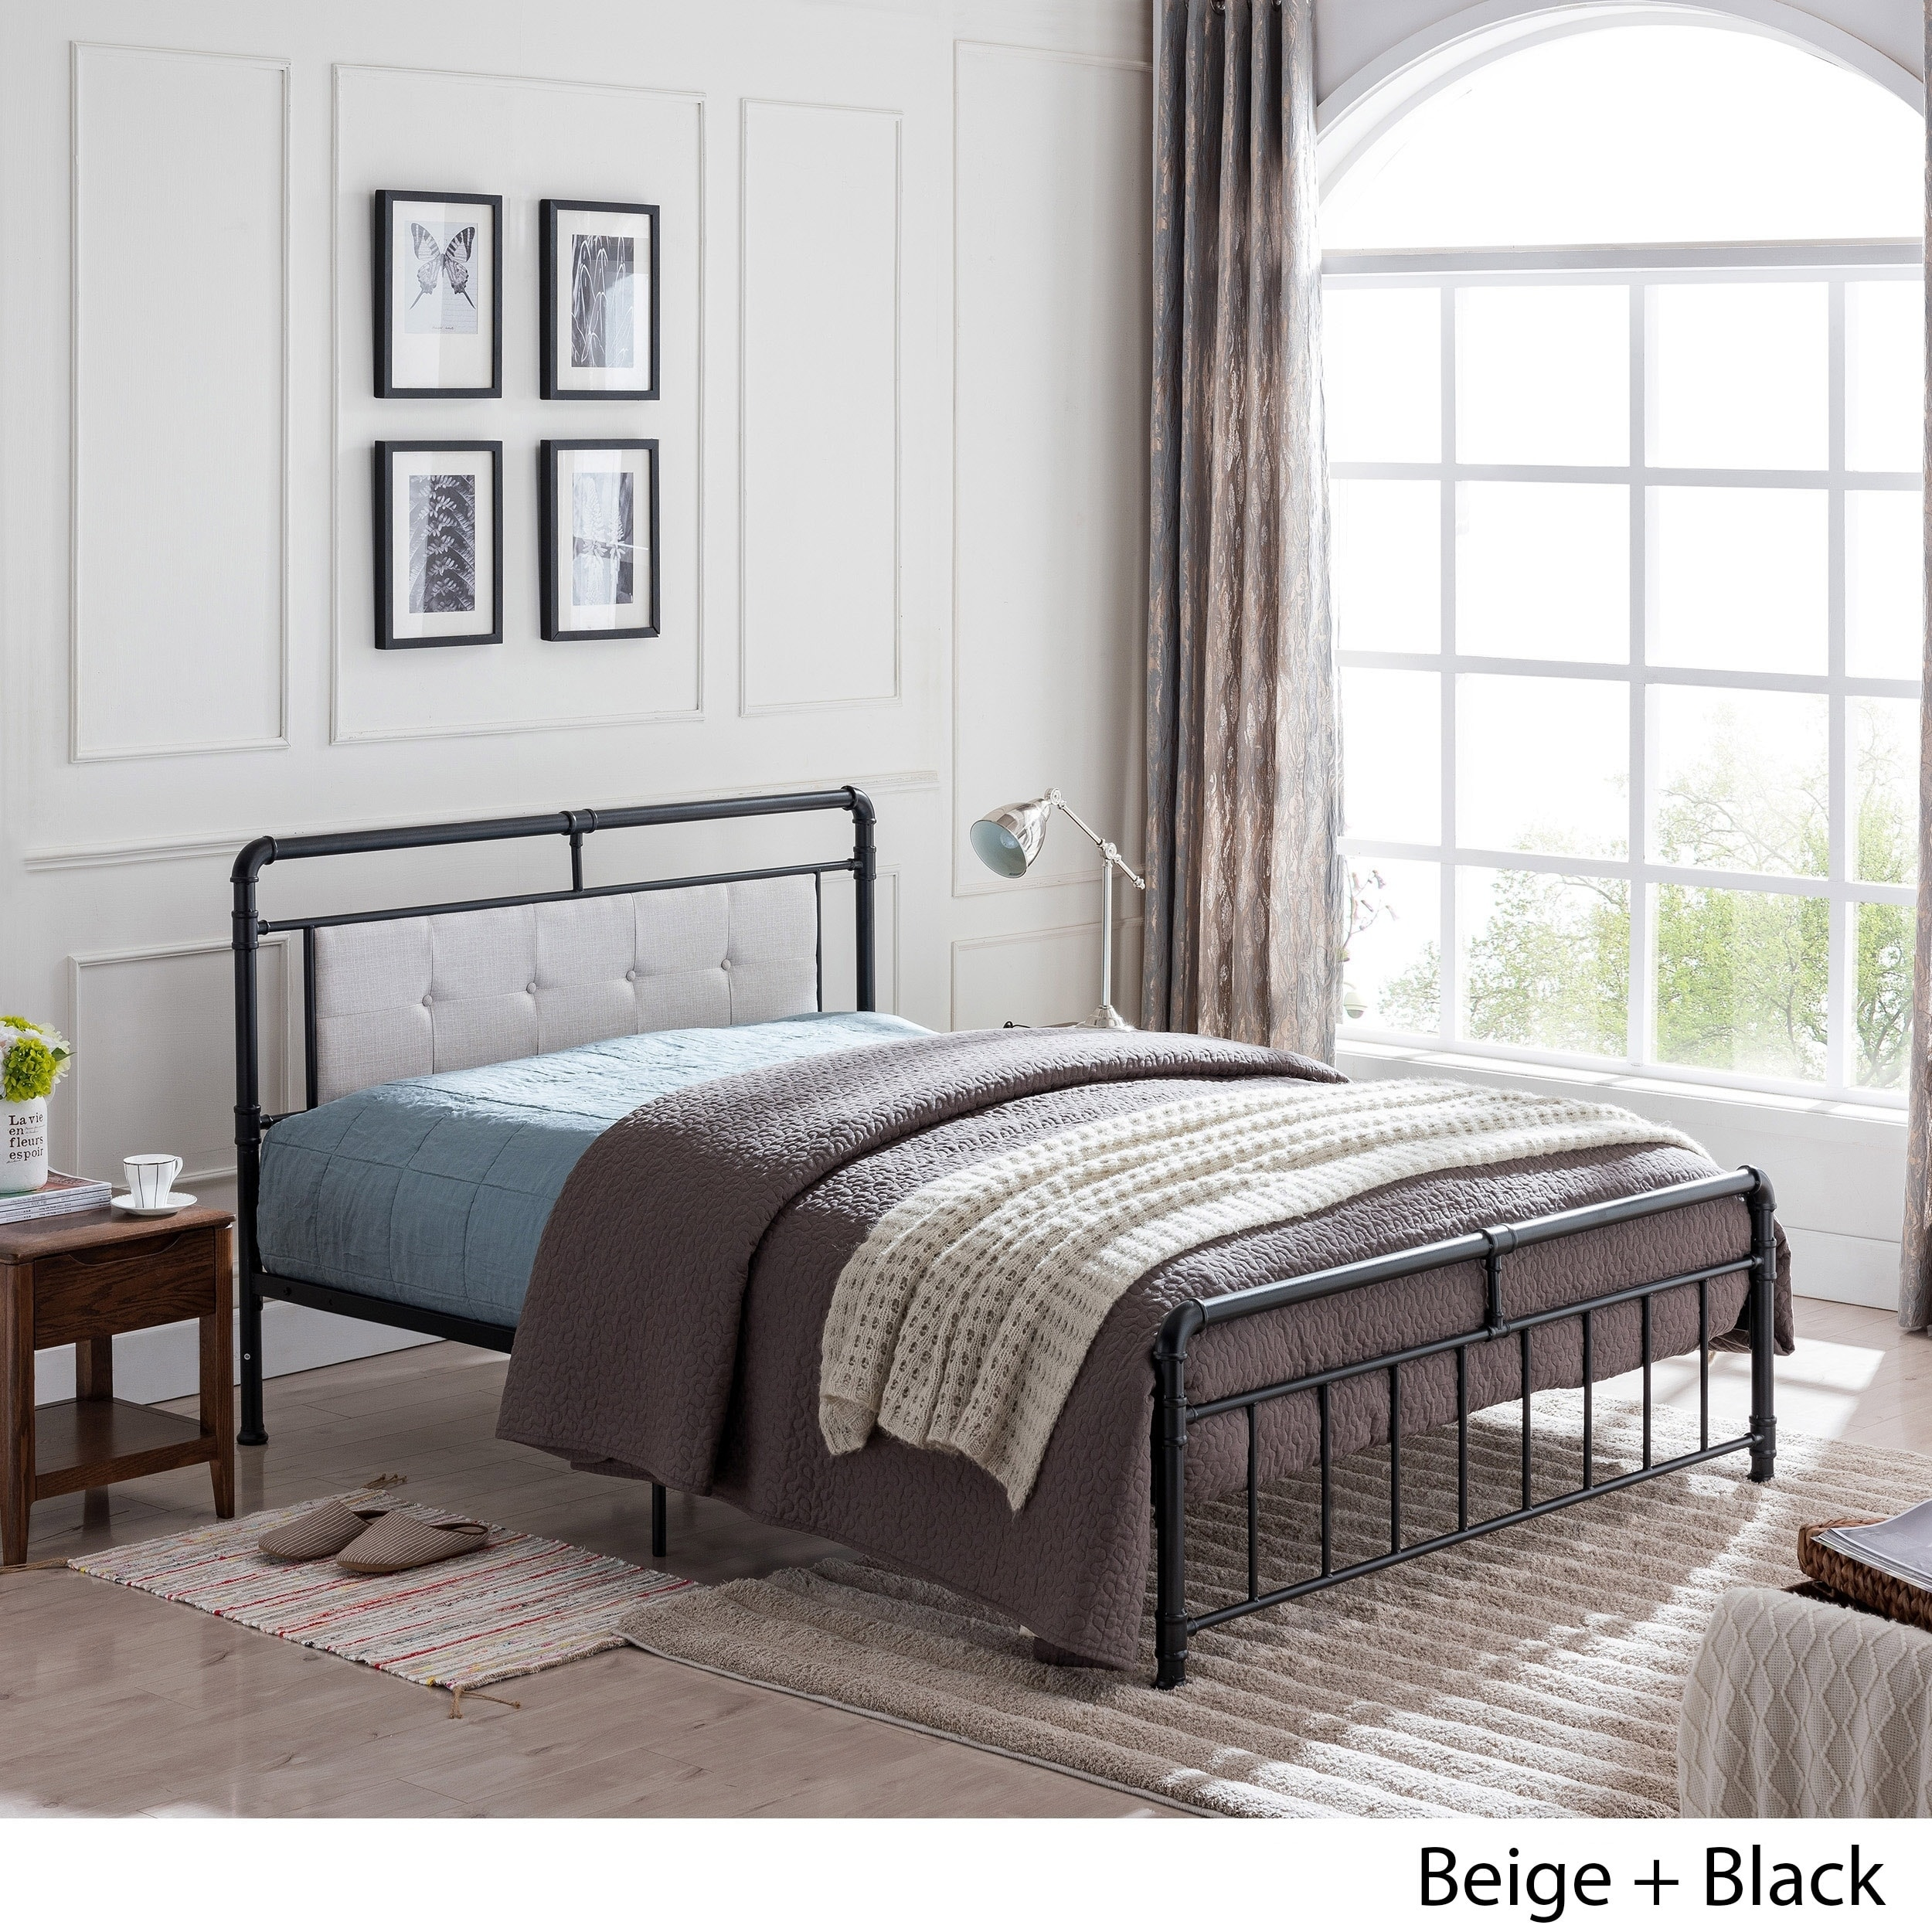 Goddard Industrial Upholstered Headboard Queen Size Bed Frame By Christopher Knight Home On Sale Overstock 24115054 Gray Black